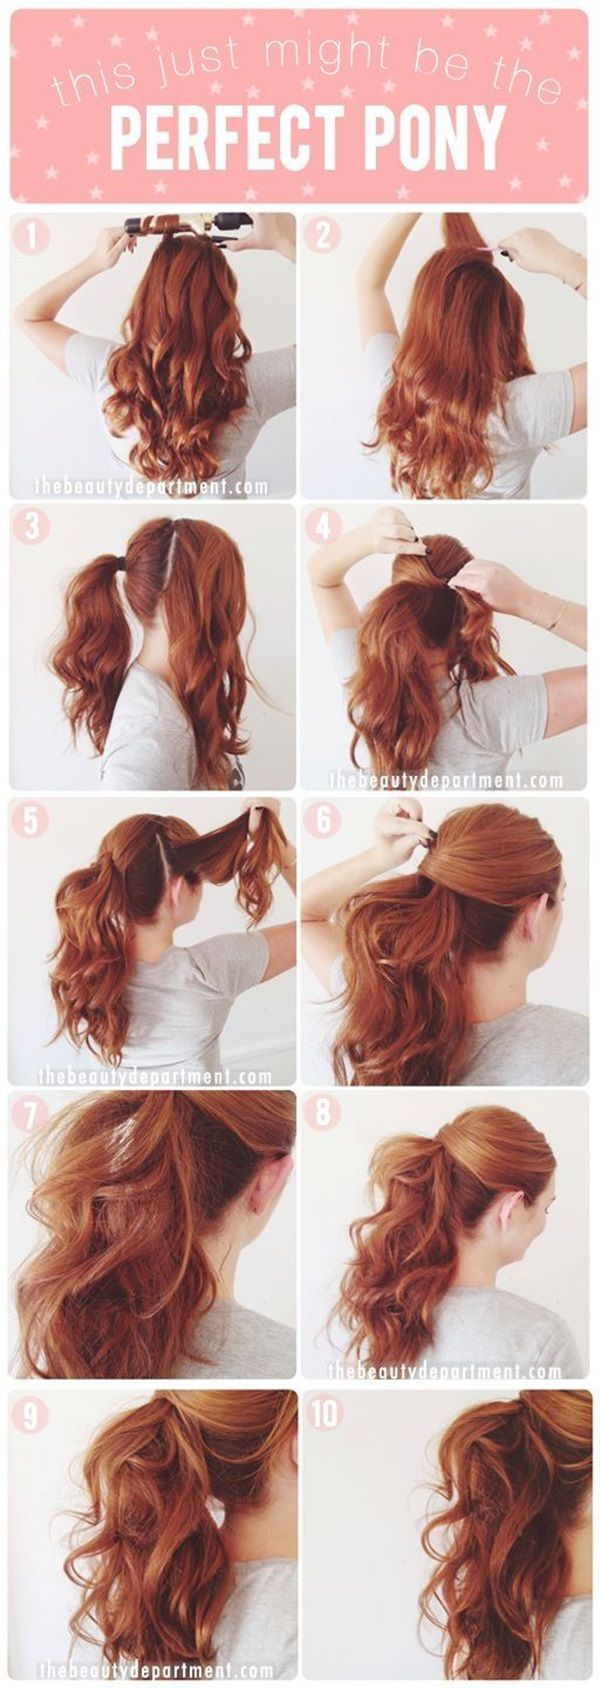 Magnificent 1000 Ideas About Diy Hairstyles On Pinterest Easy Diy Short Hairstyles For Black Women Fulllsitofus